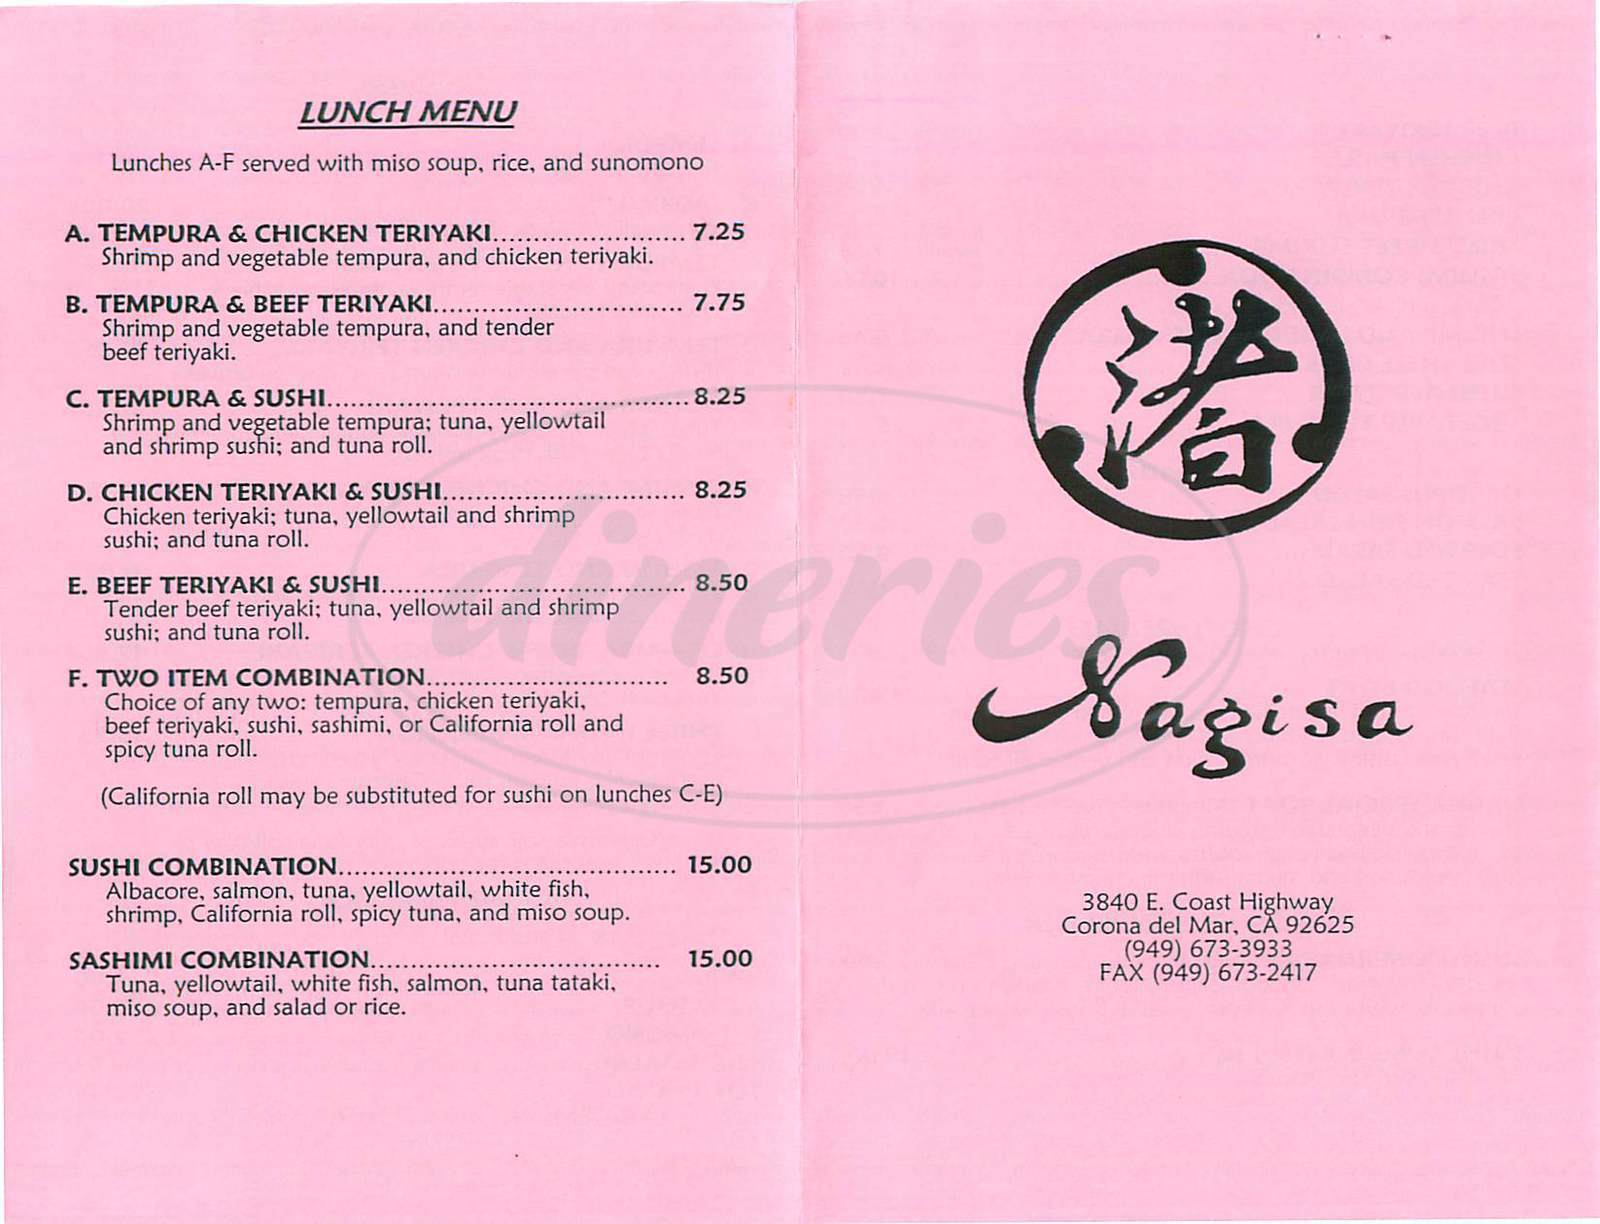 menu for Nagisa